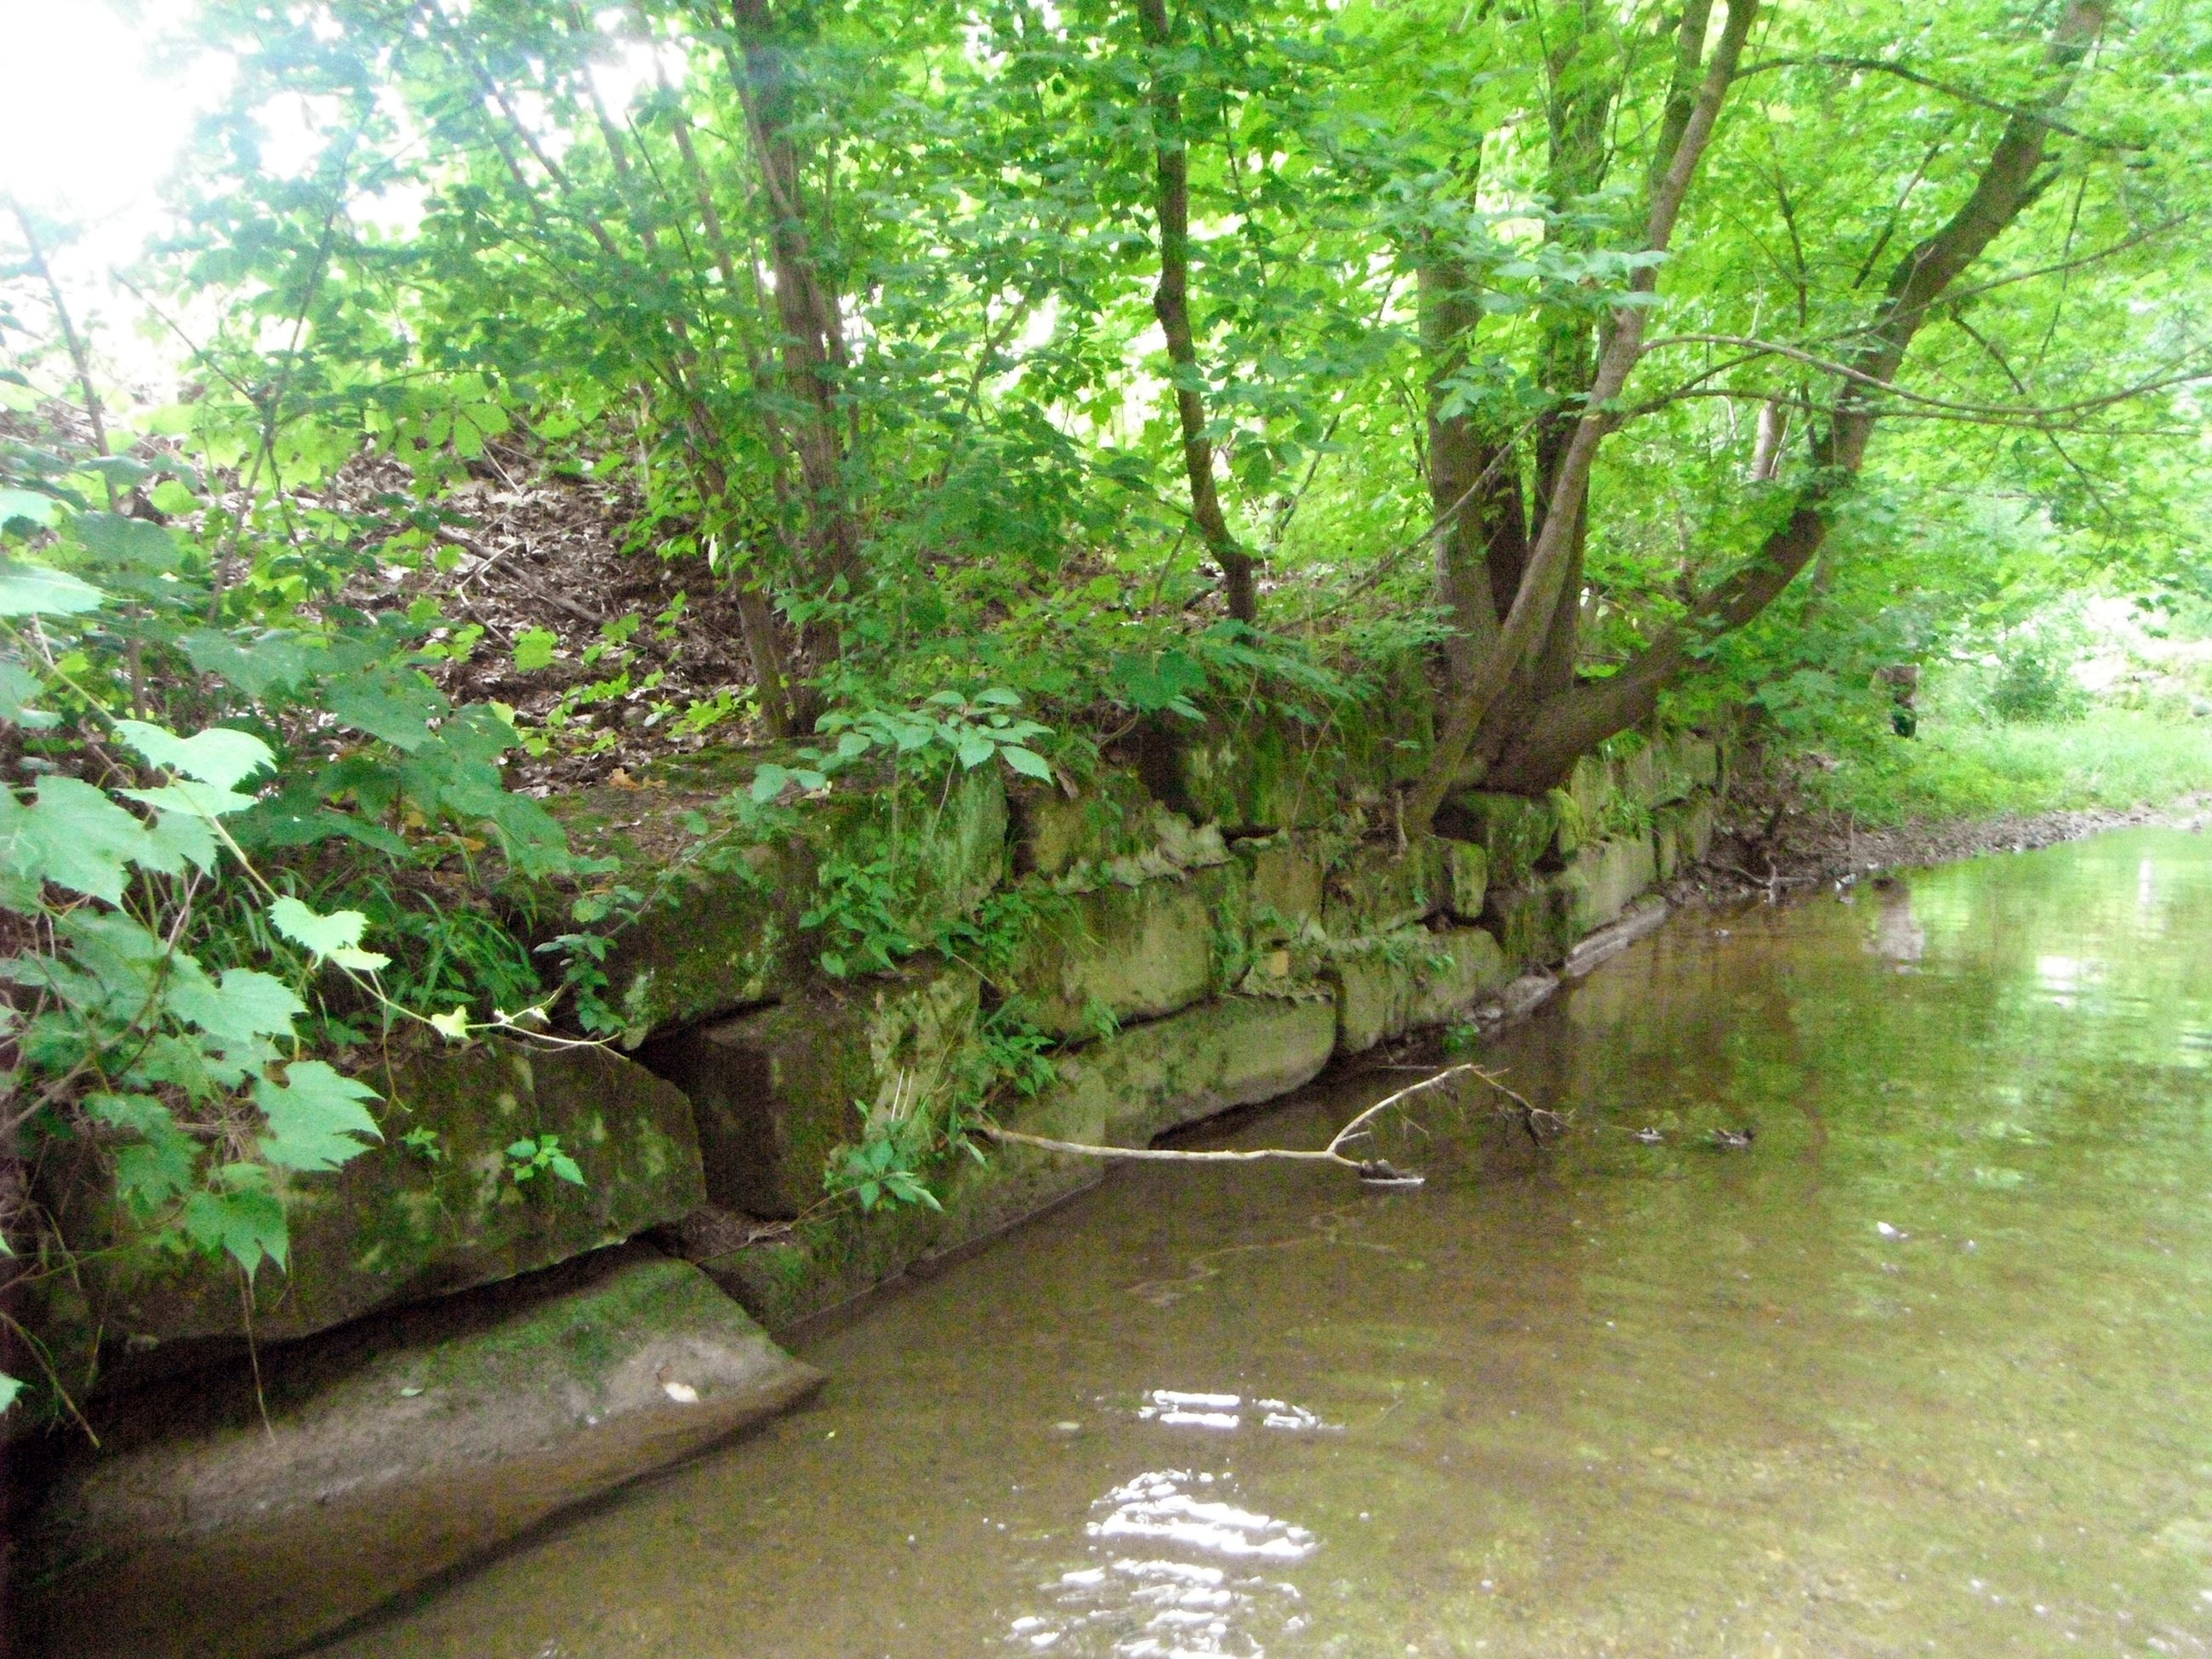 Retaining wall in stream